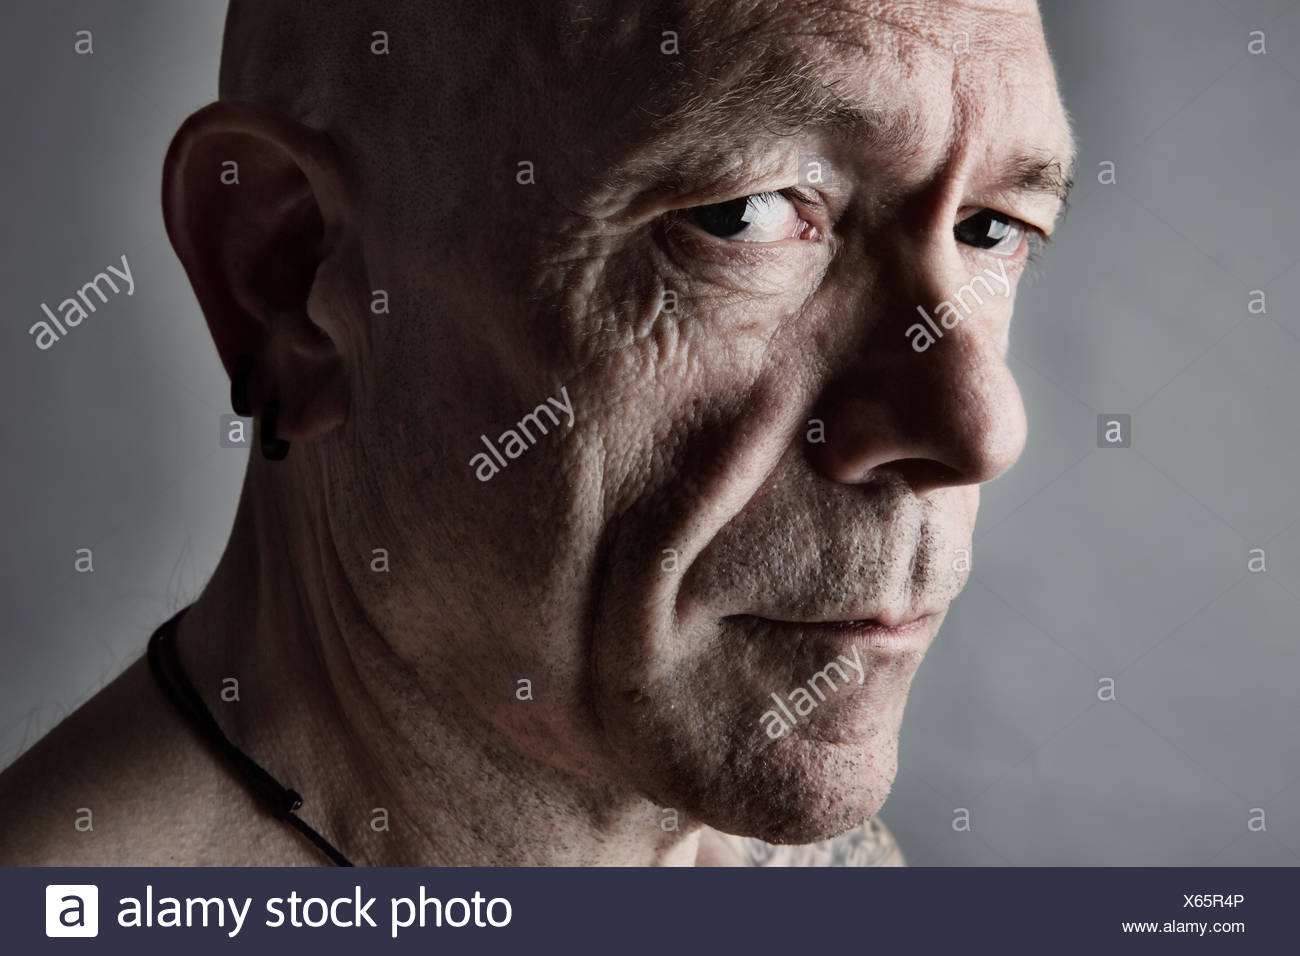 Portrait of sceptical looking man with bald - Stock Image